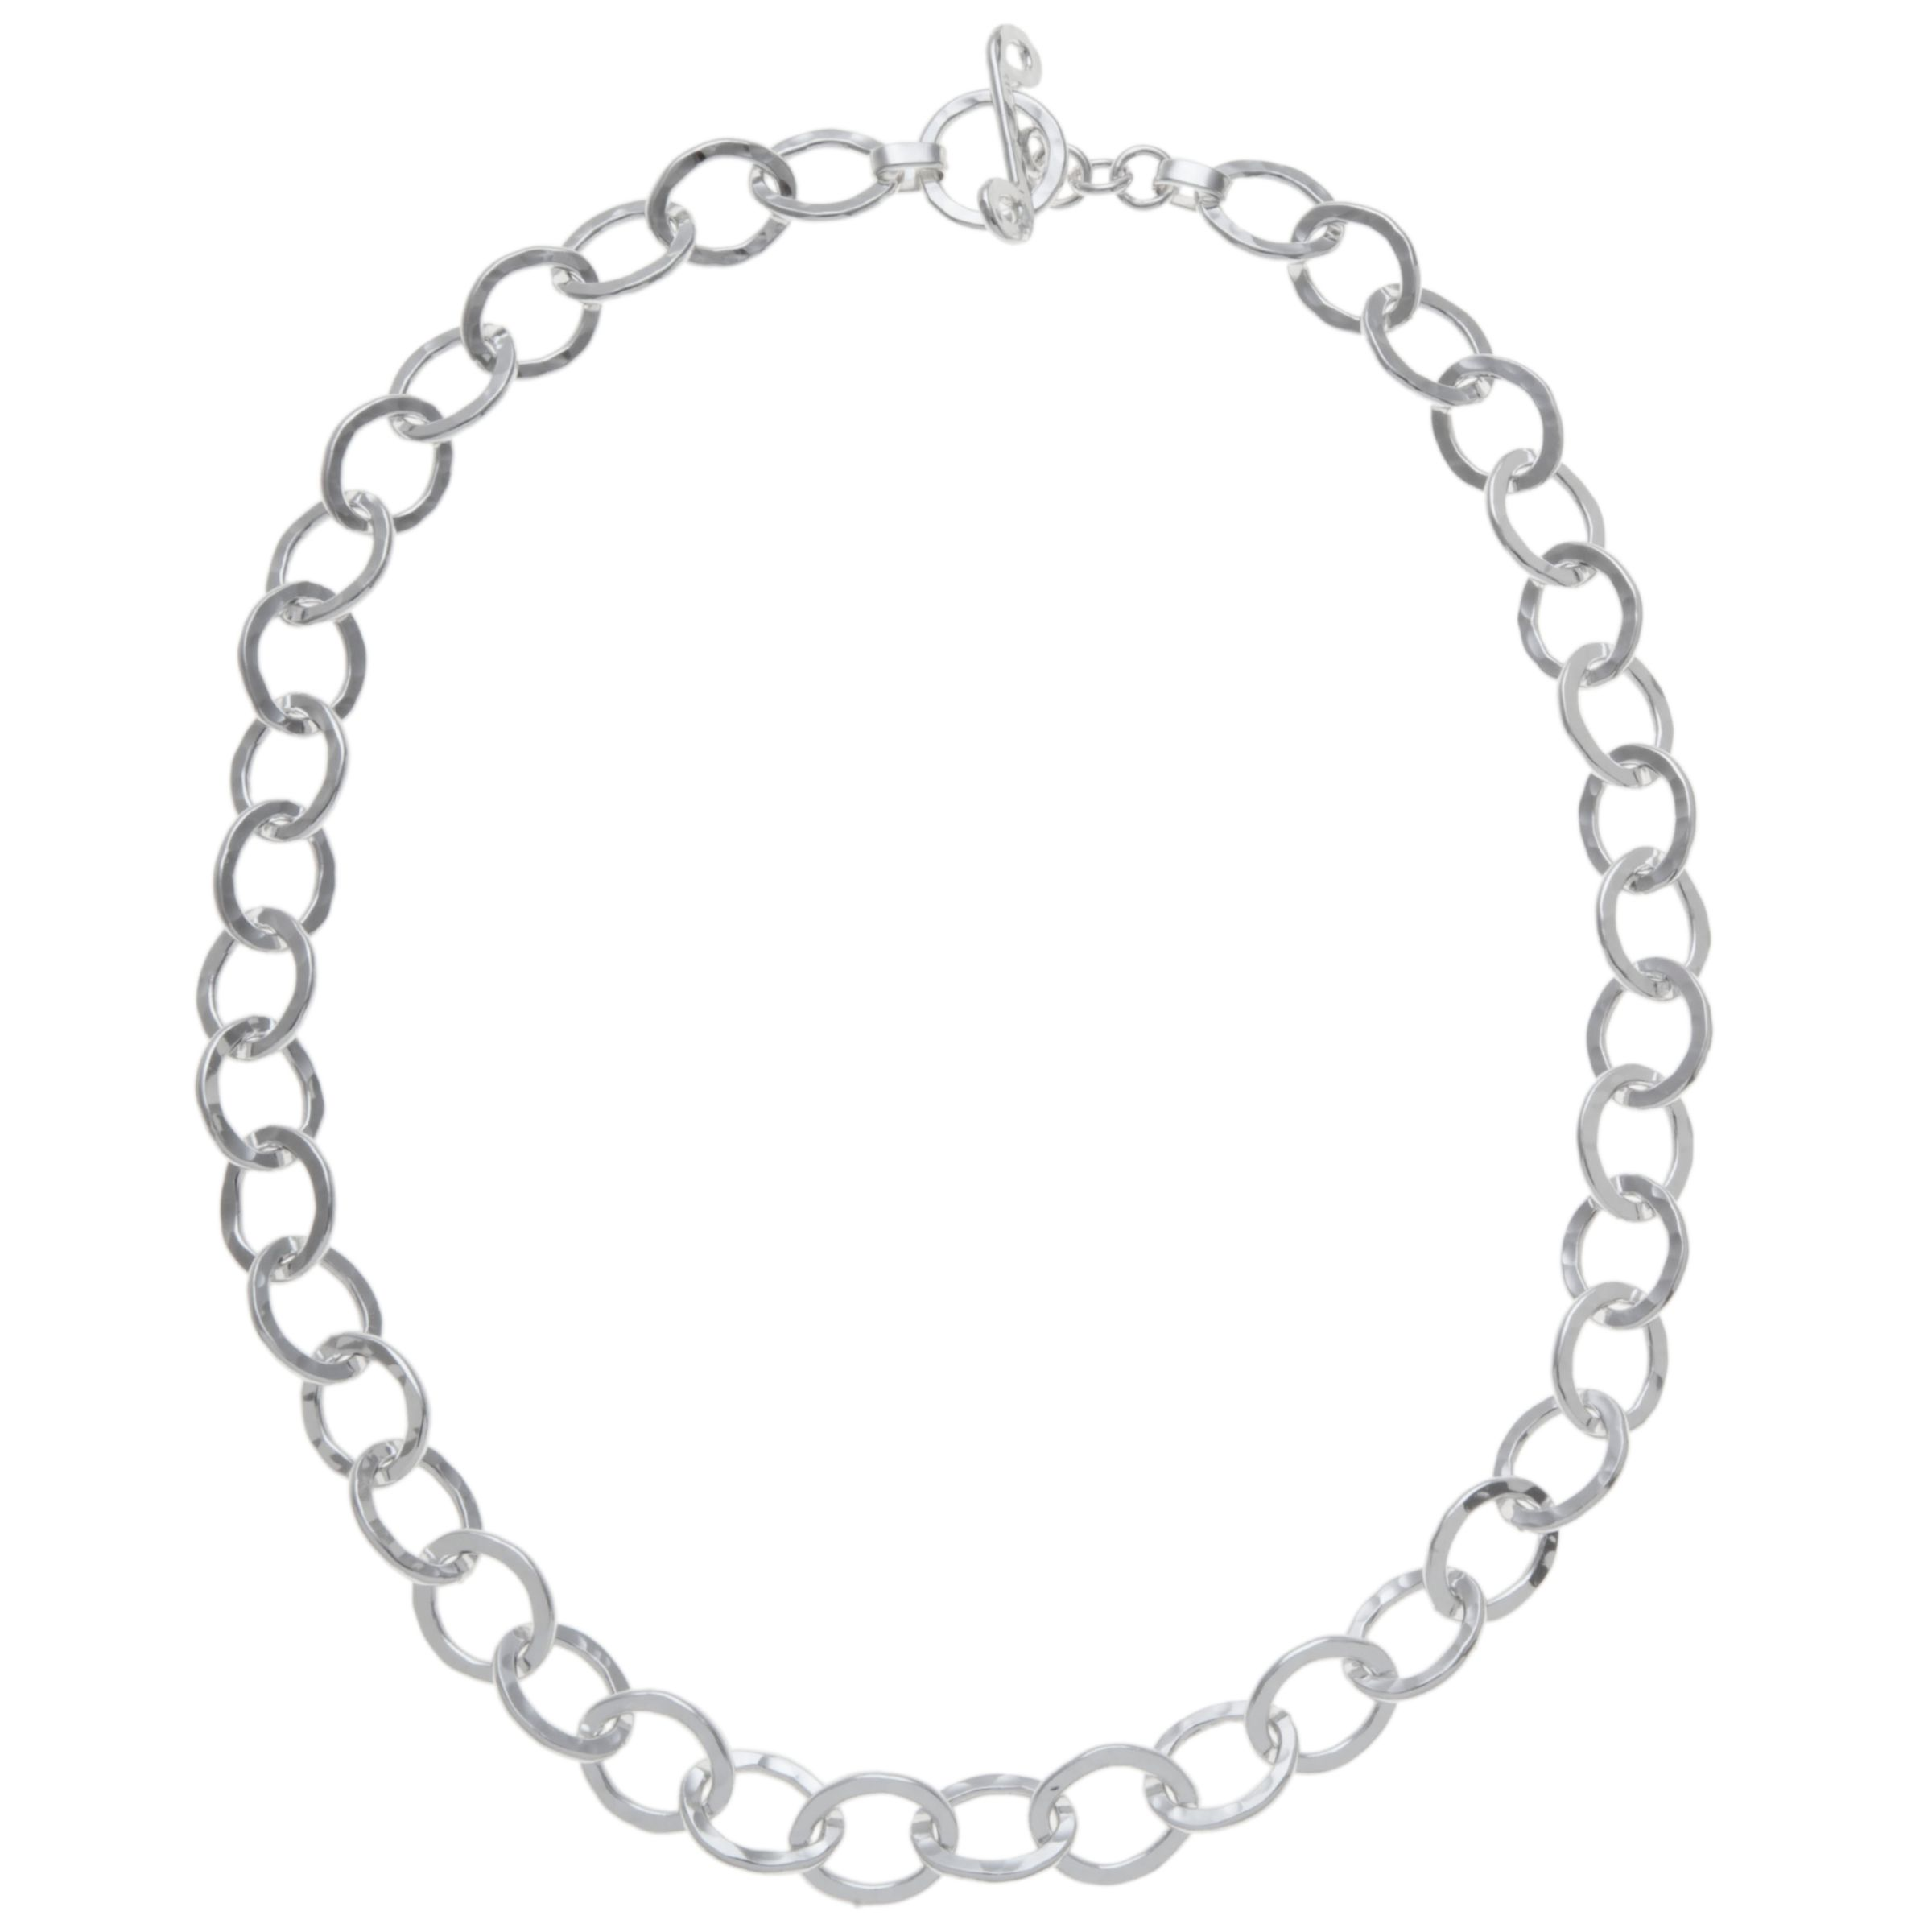 Andea Andea Sterling Silver Oval Links Necklace